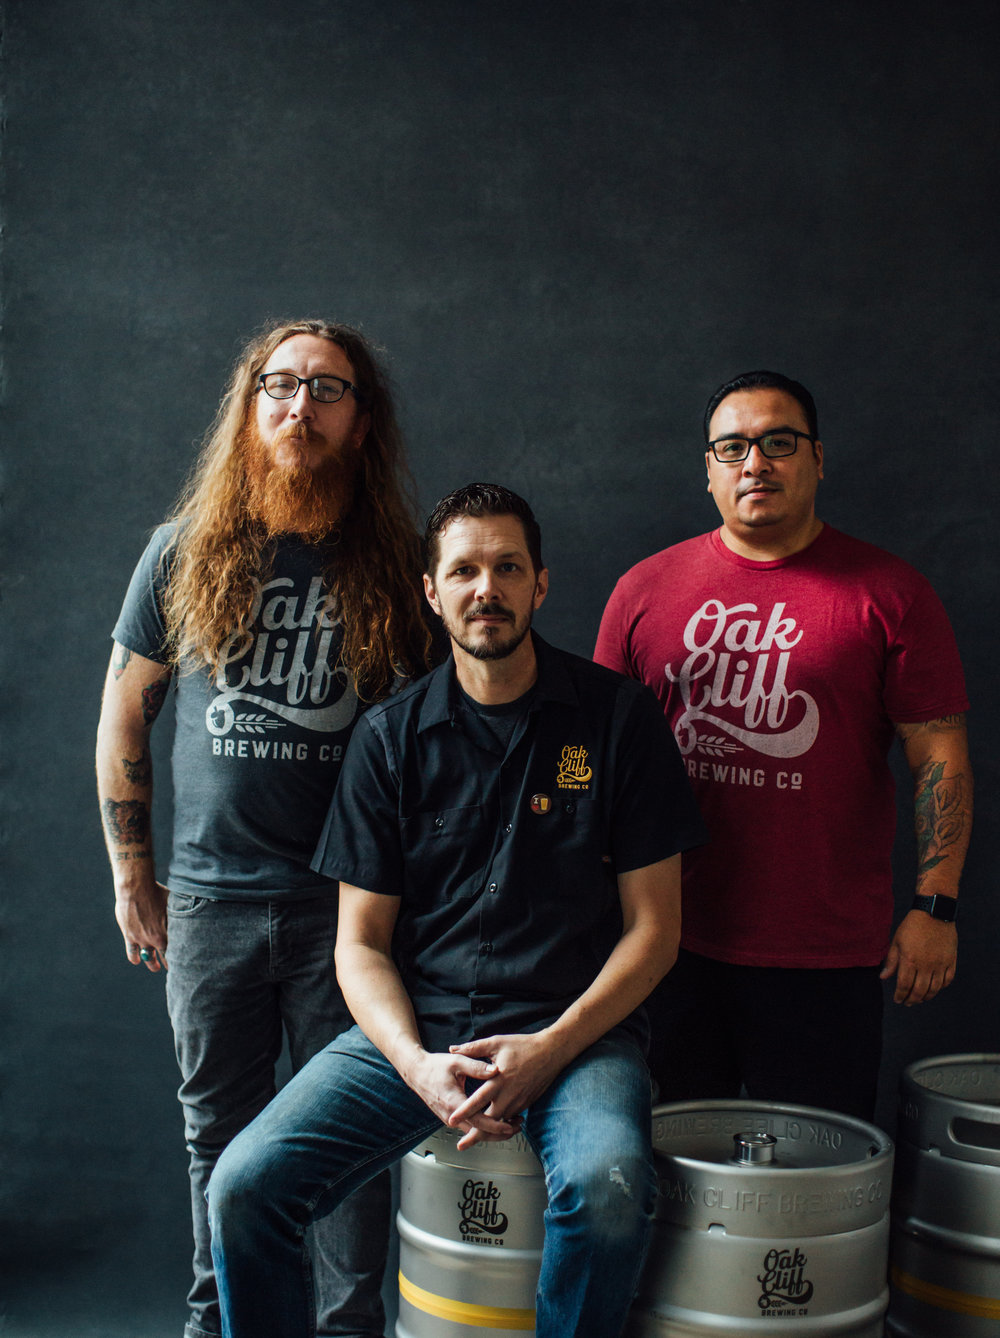 Pictured Left to Right: Todd Holder - Director of Brewing Operations, Joel Denton - Founder and Brewer, Jacob Contreras - Director of Sales